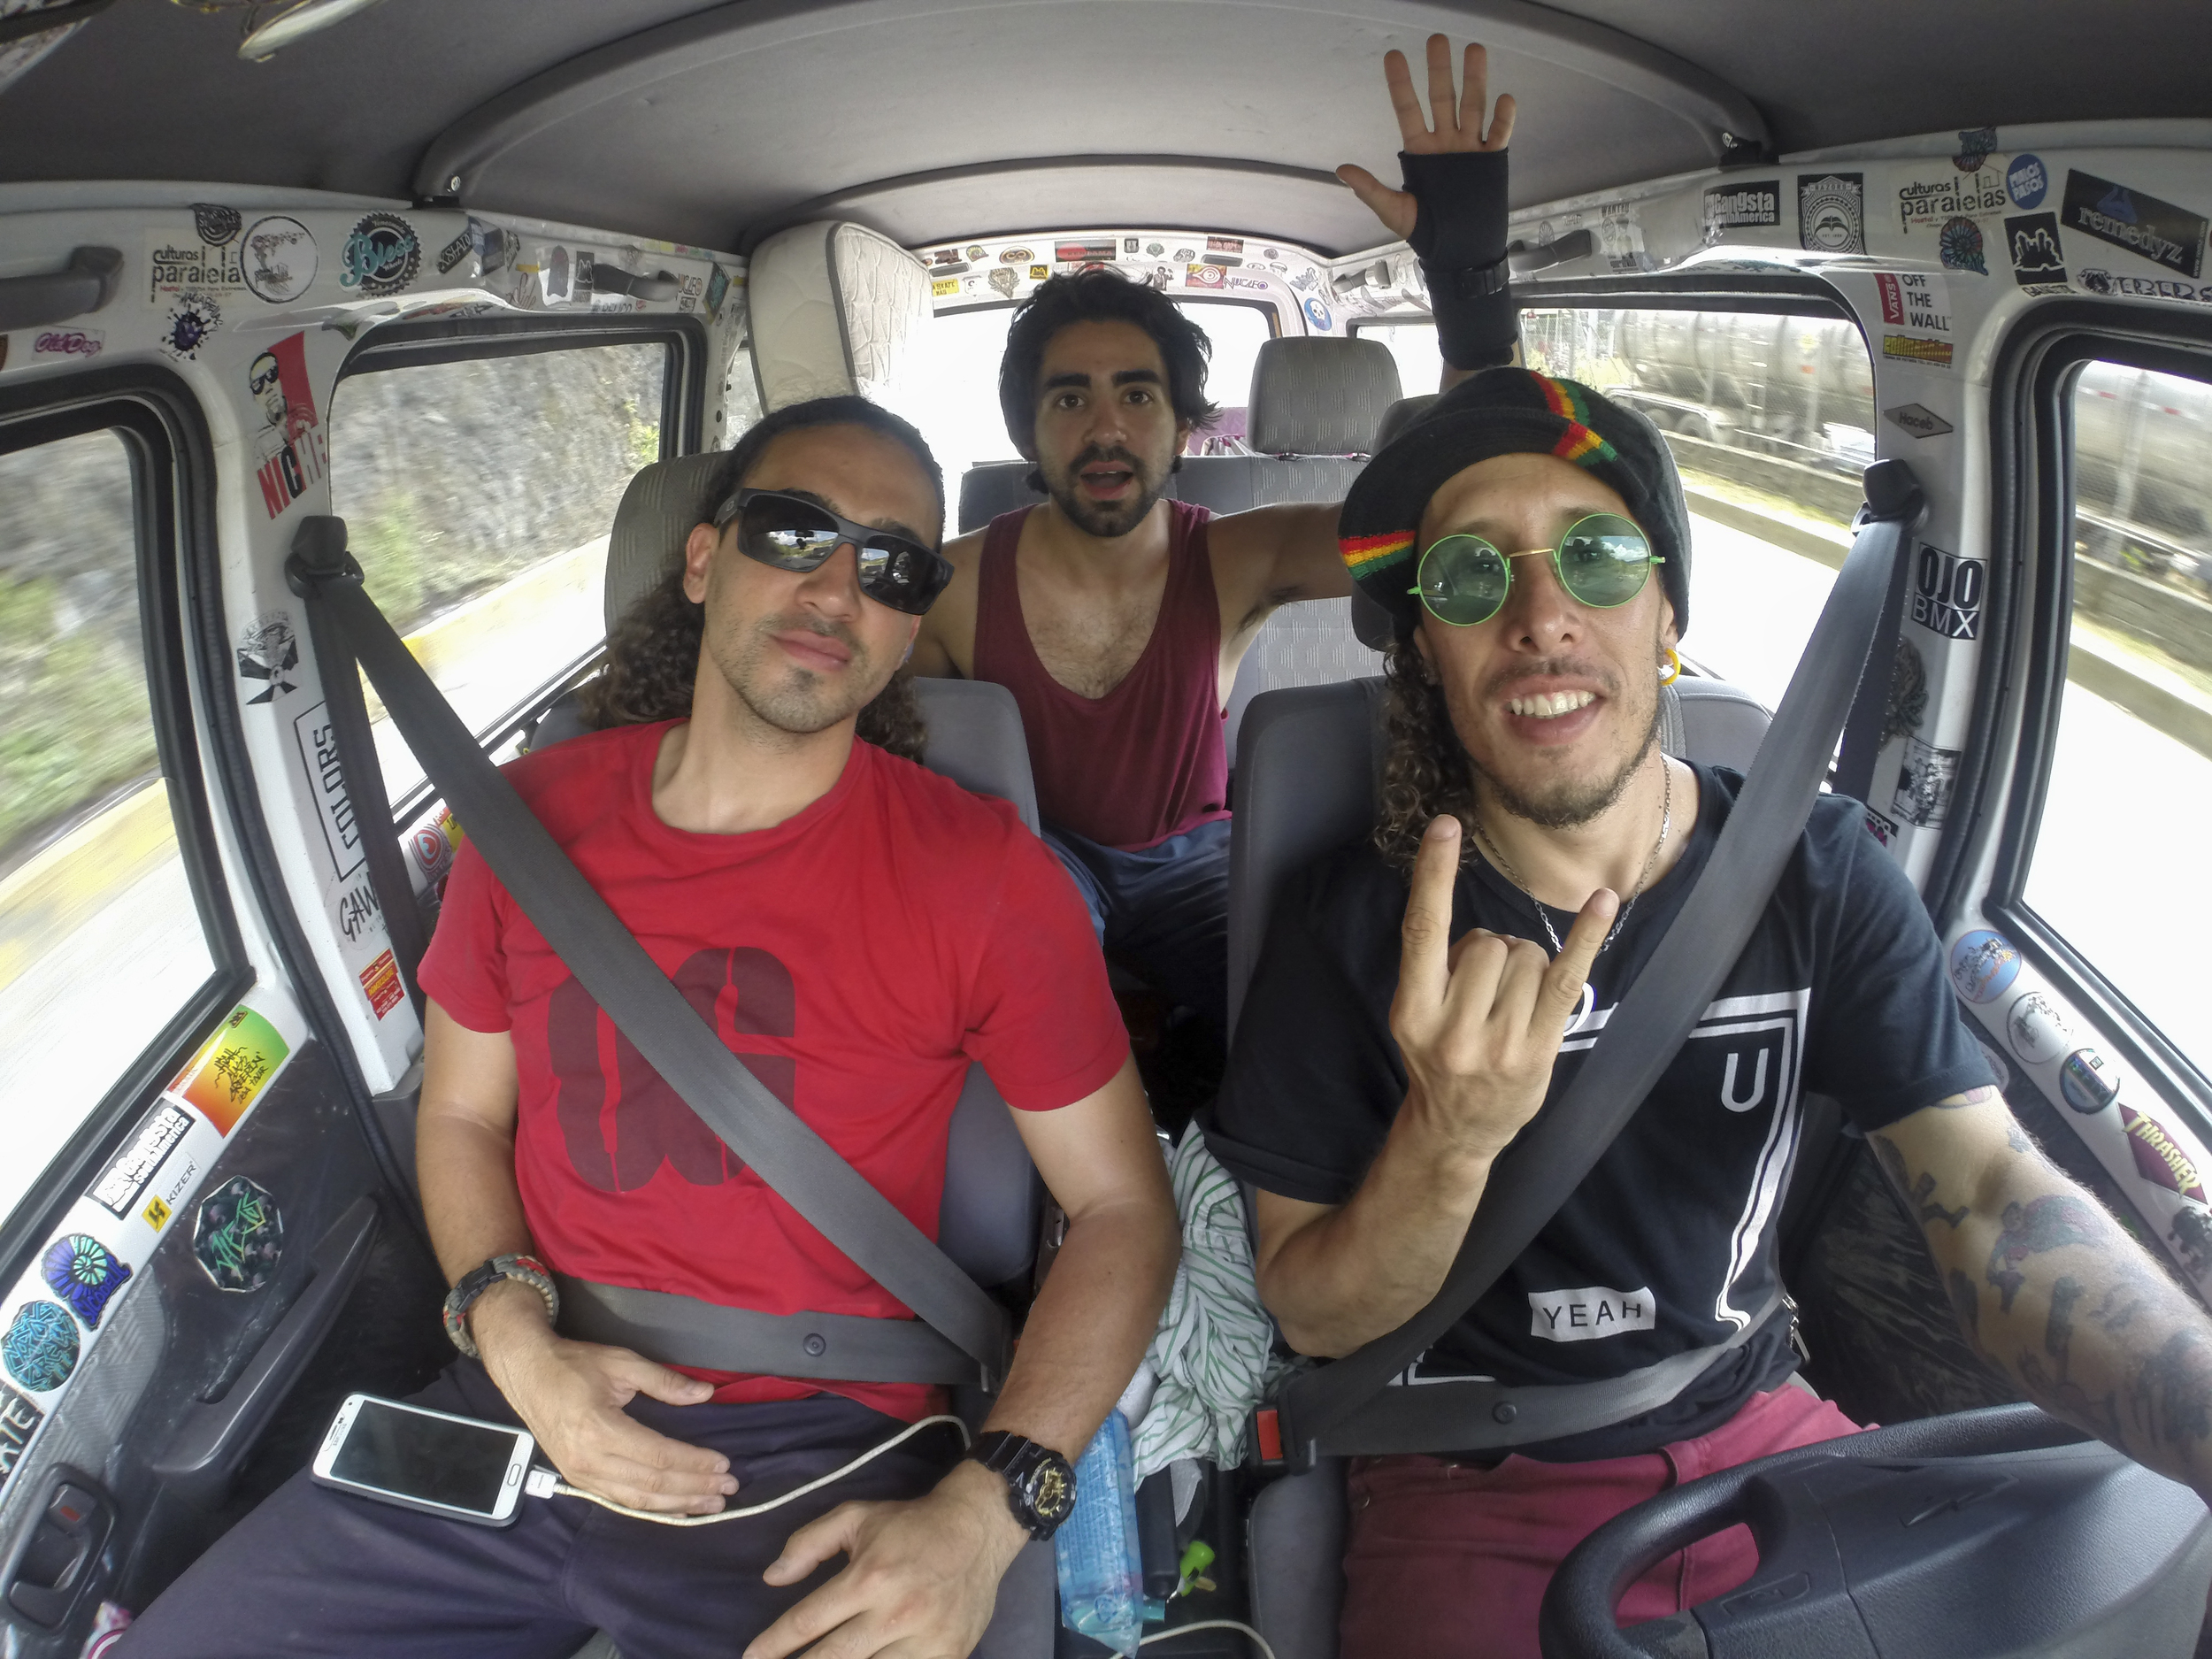 We left Zepe and Vuenza at the skatepark and headed back to Medellin as a trio.  GoPro Heor 3+ Black (iso161, f/2.8, 1/60s)